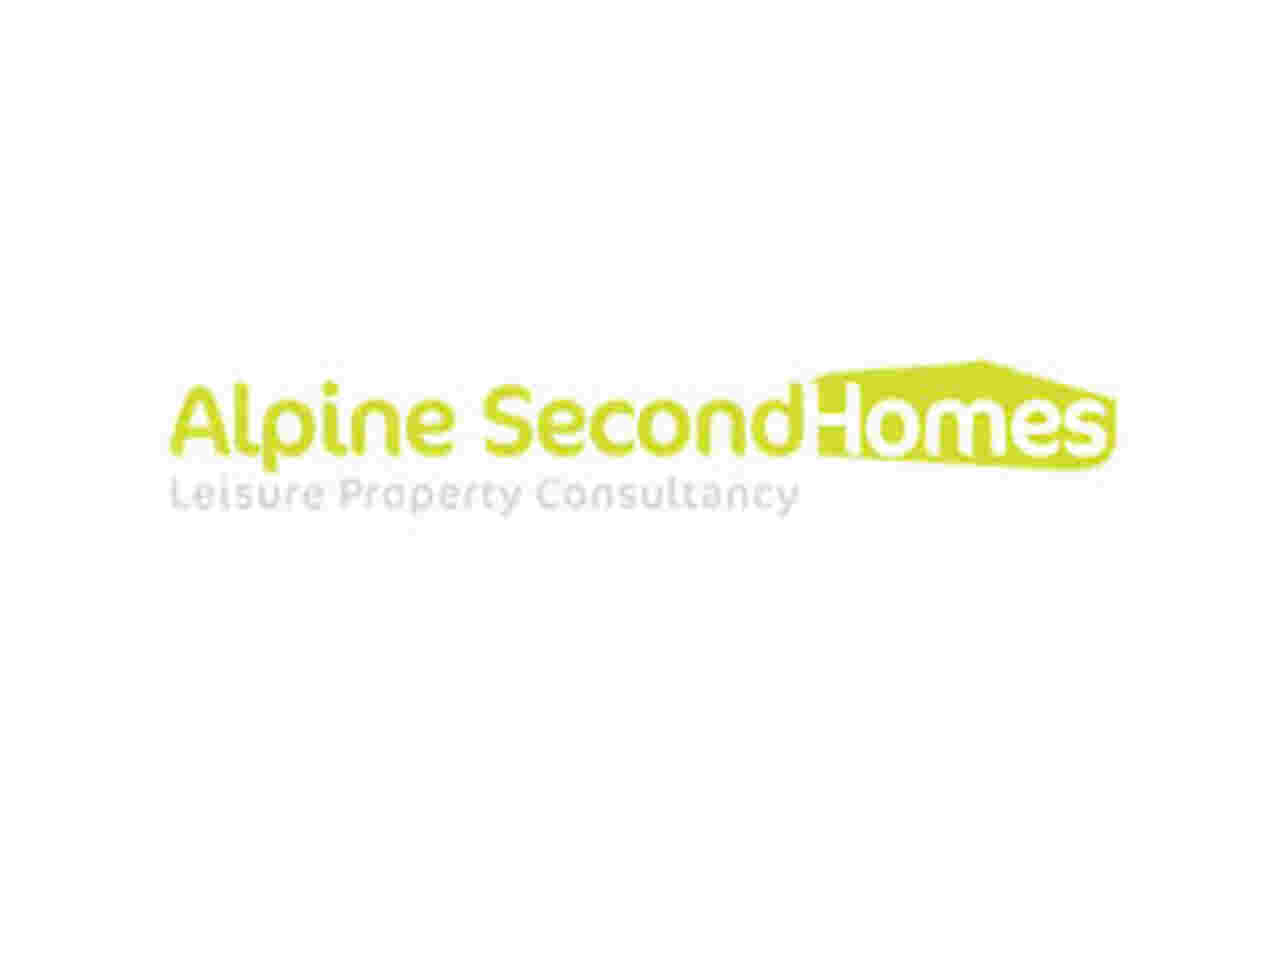 Alpine Second Homes